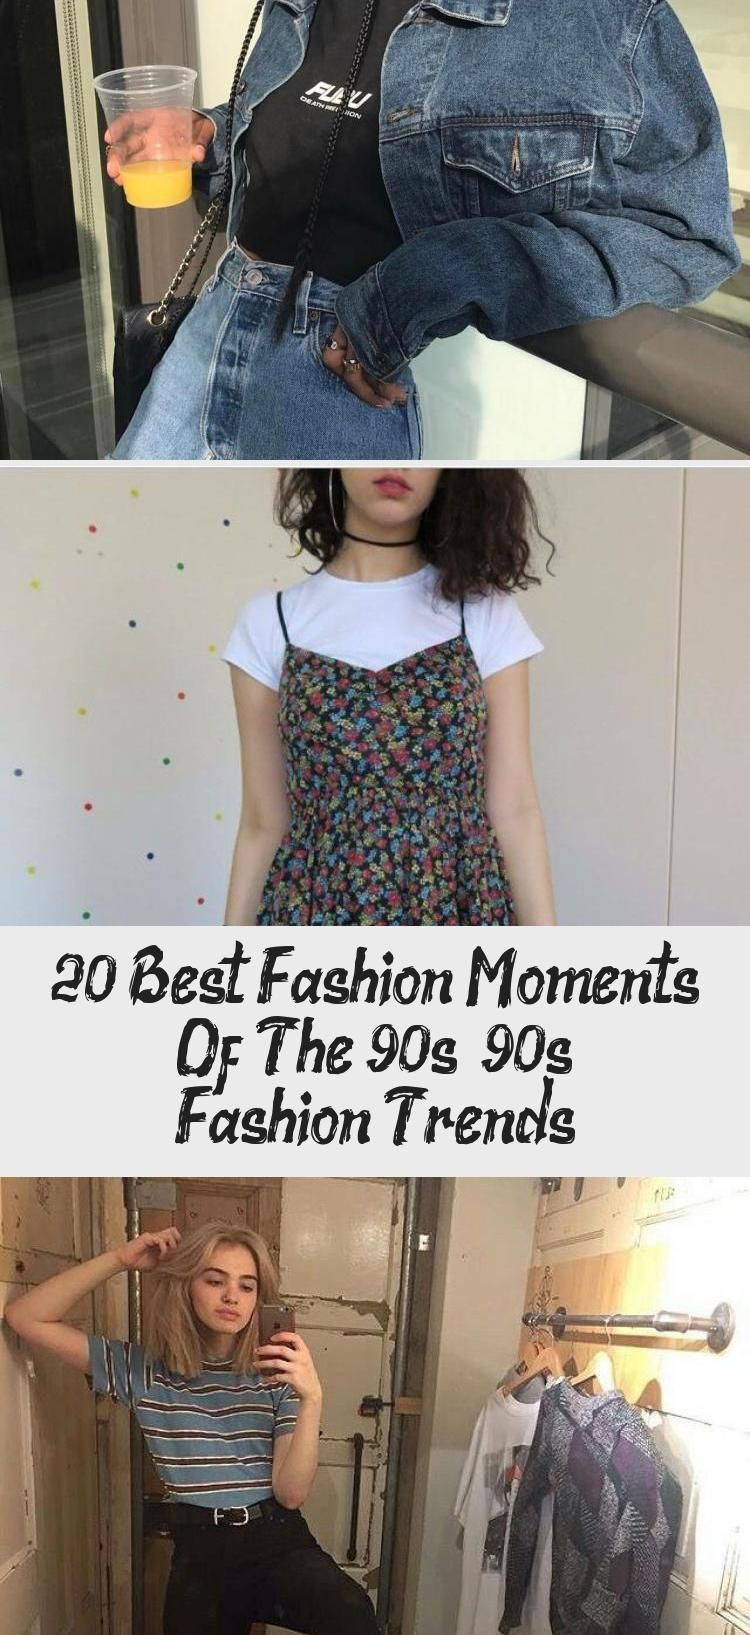 20 Best Fashion Moments Of The 90s – 90s Fashion Trends - Oktoberfest #90sfashiontrends